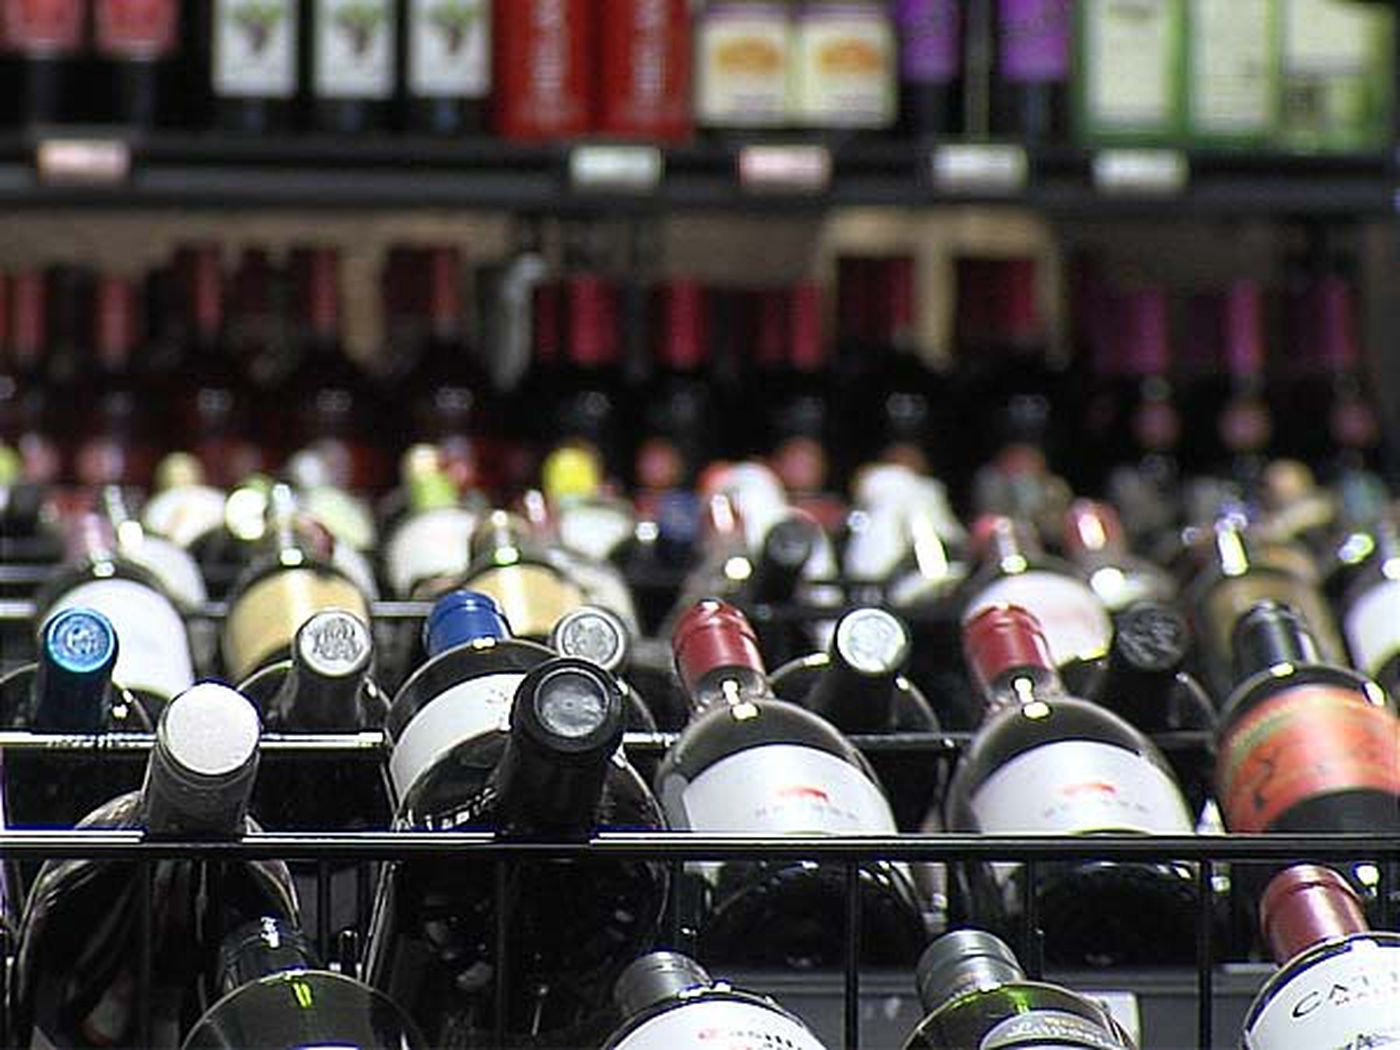 Liquor sales spike for New Year's Eve